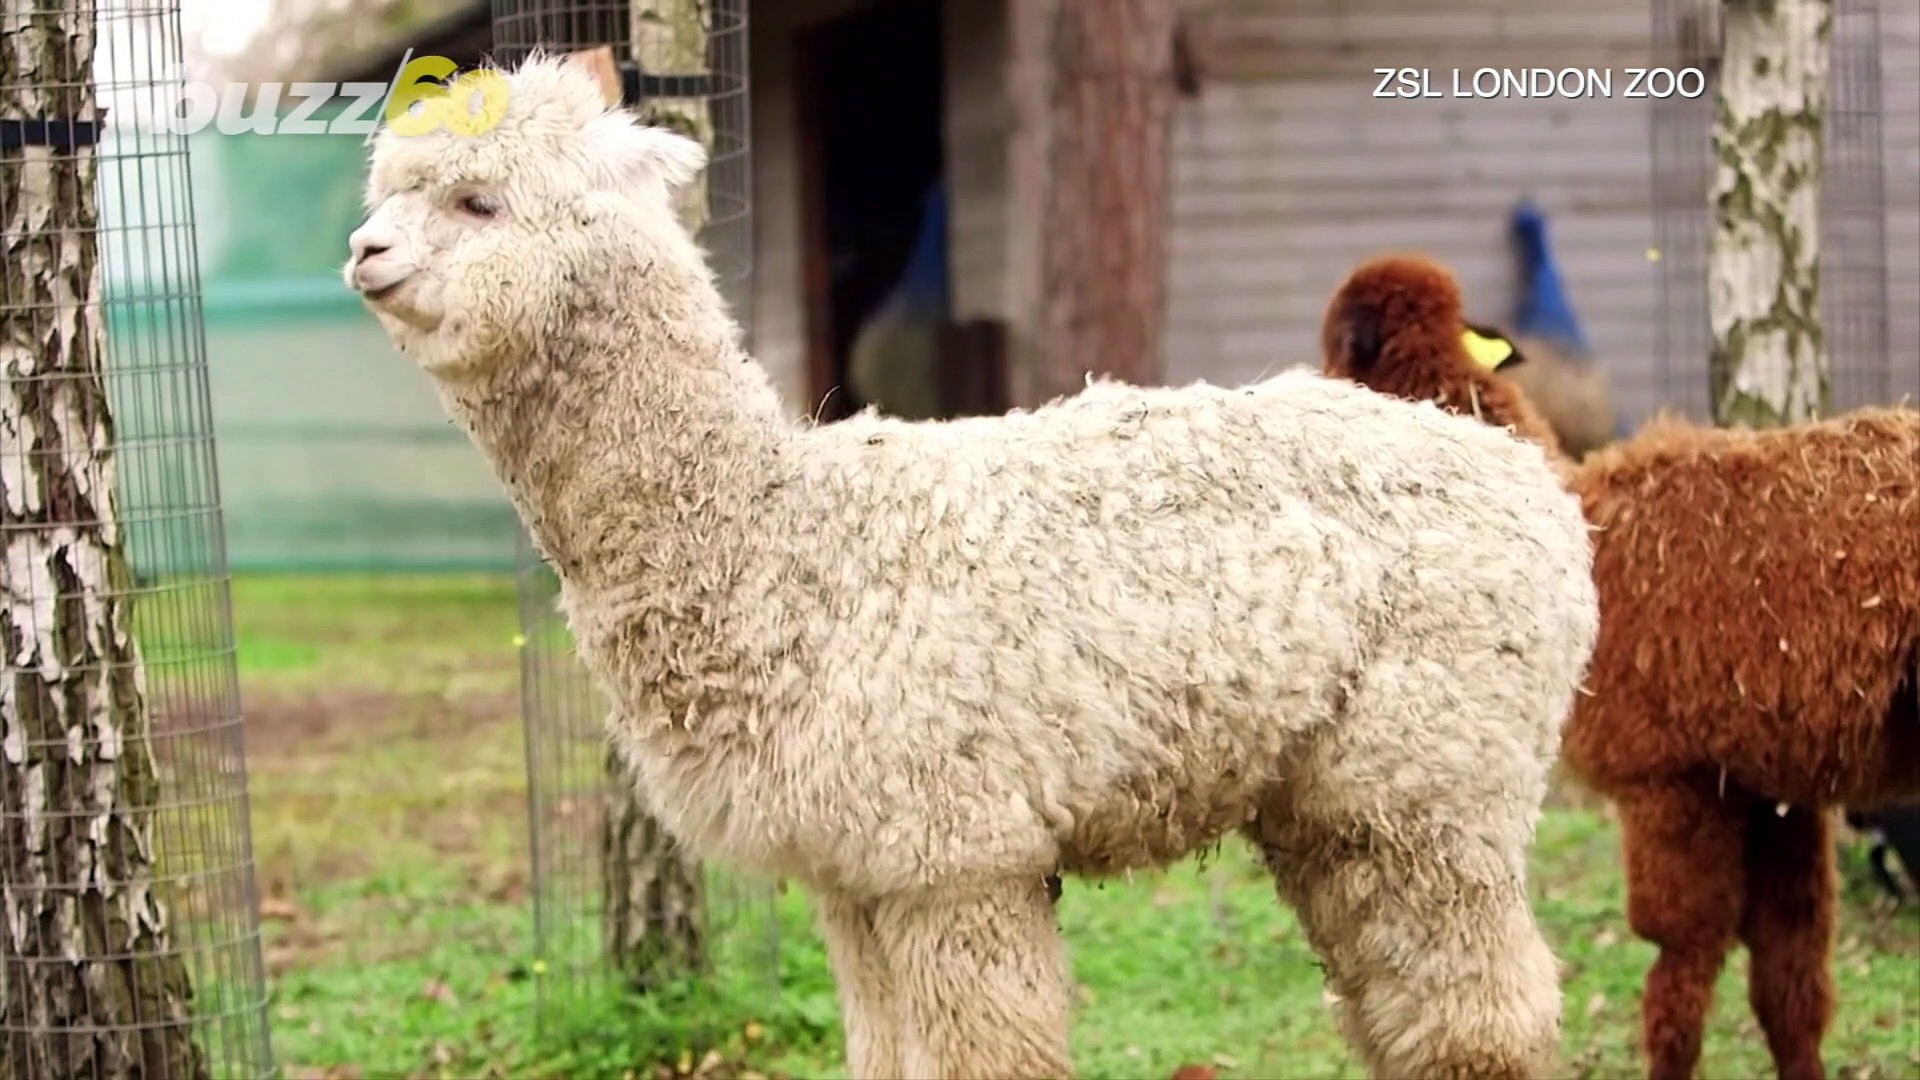 The Name Game! London Zoo Wants You To Help Name Their 3 New Alpacas!